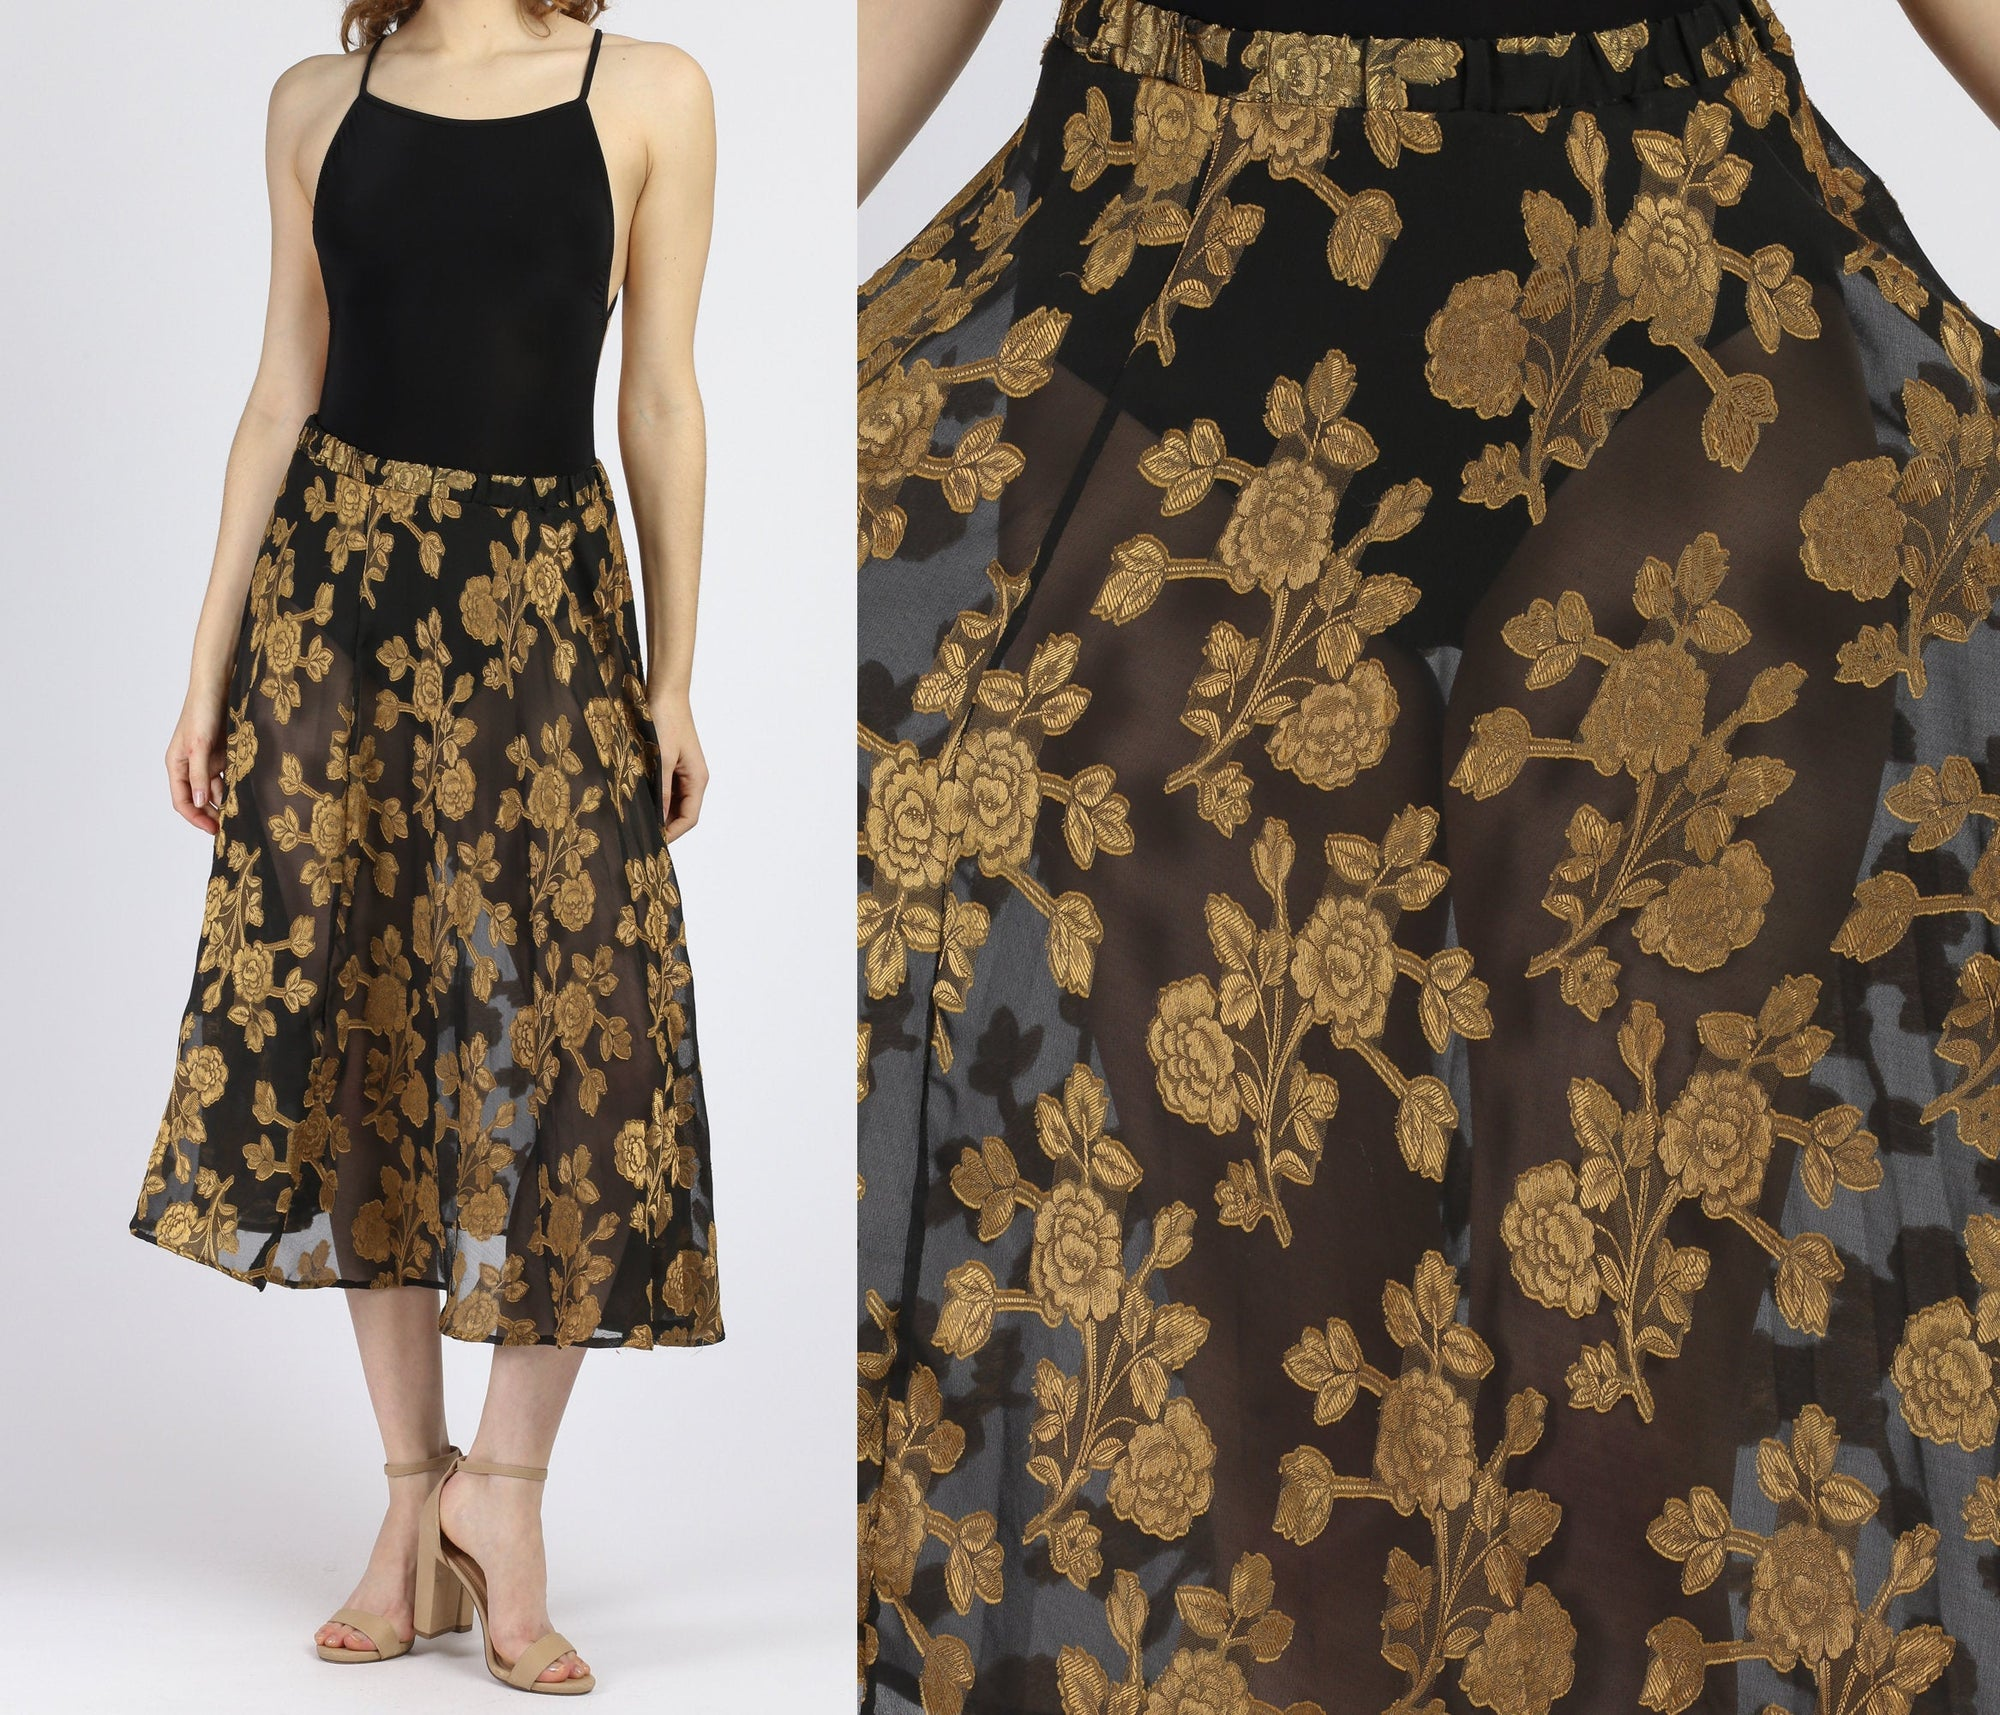 90s Sheer Black & Gold Floral Midi Skirt - Small to Medium